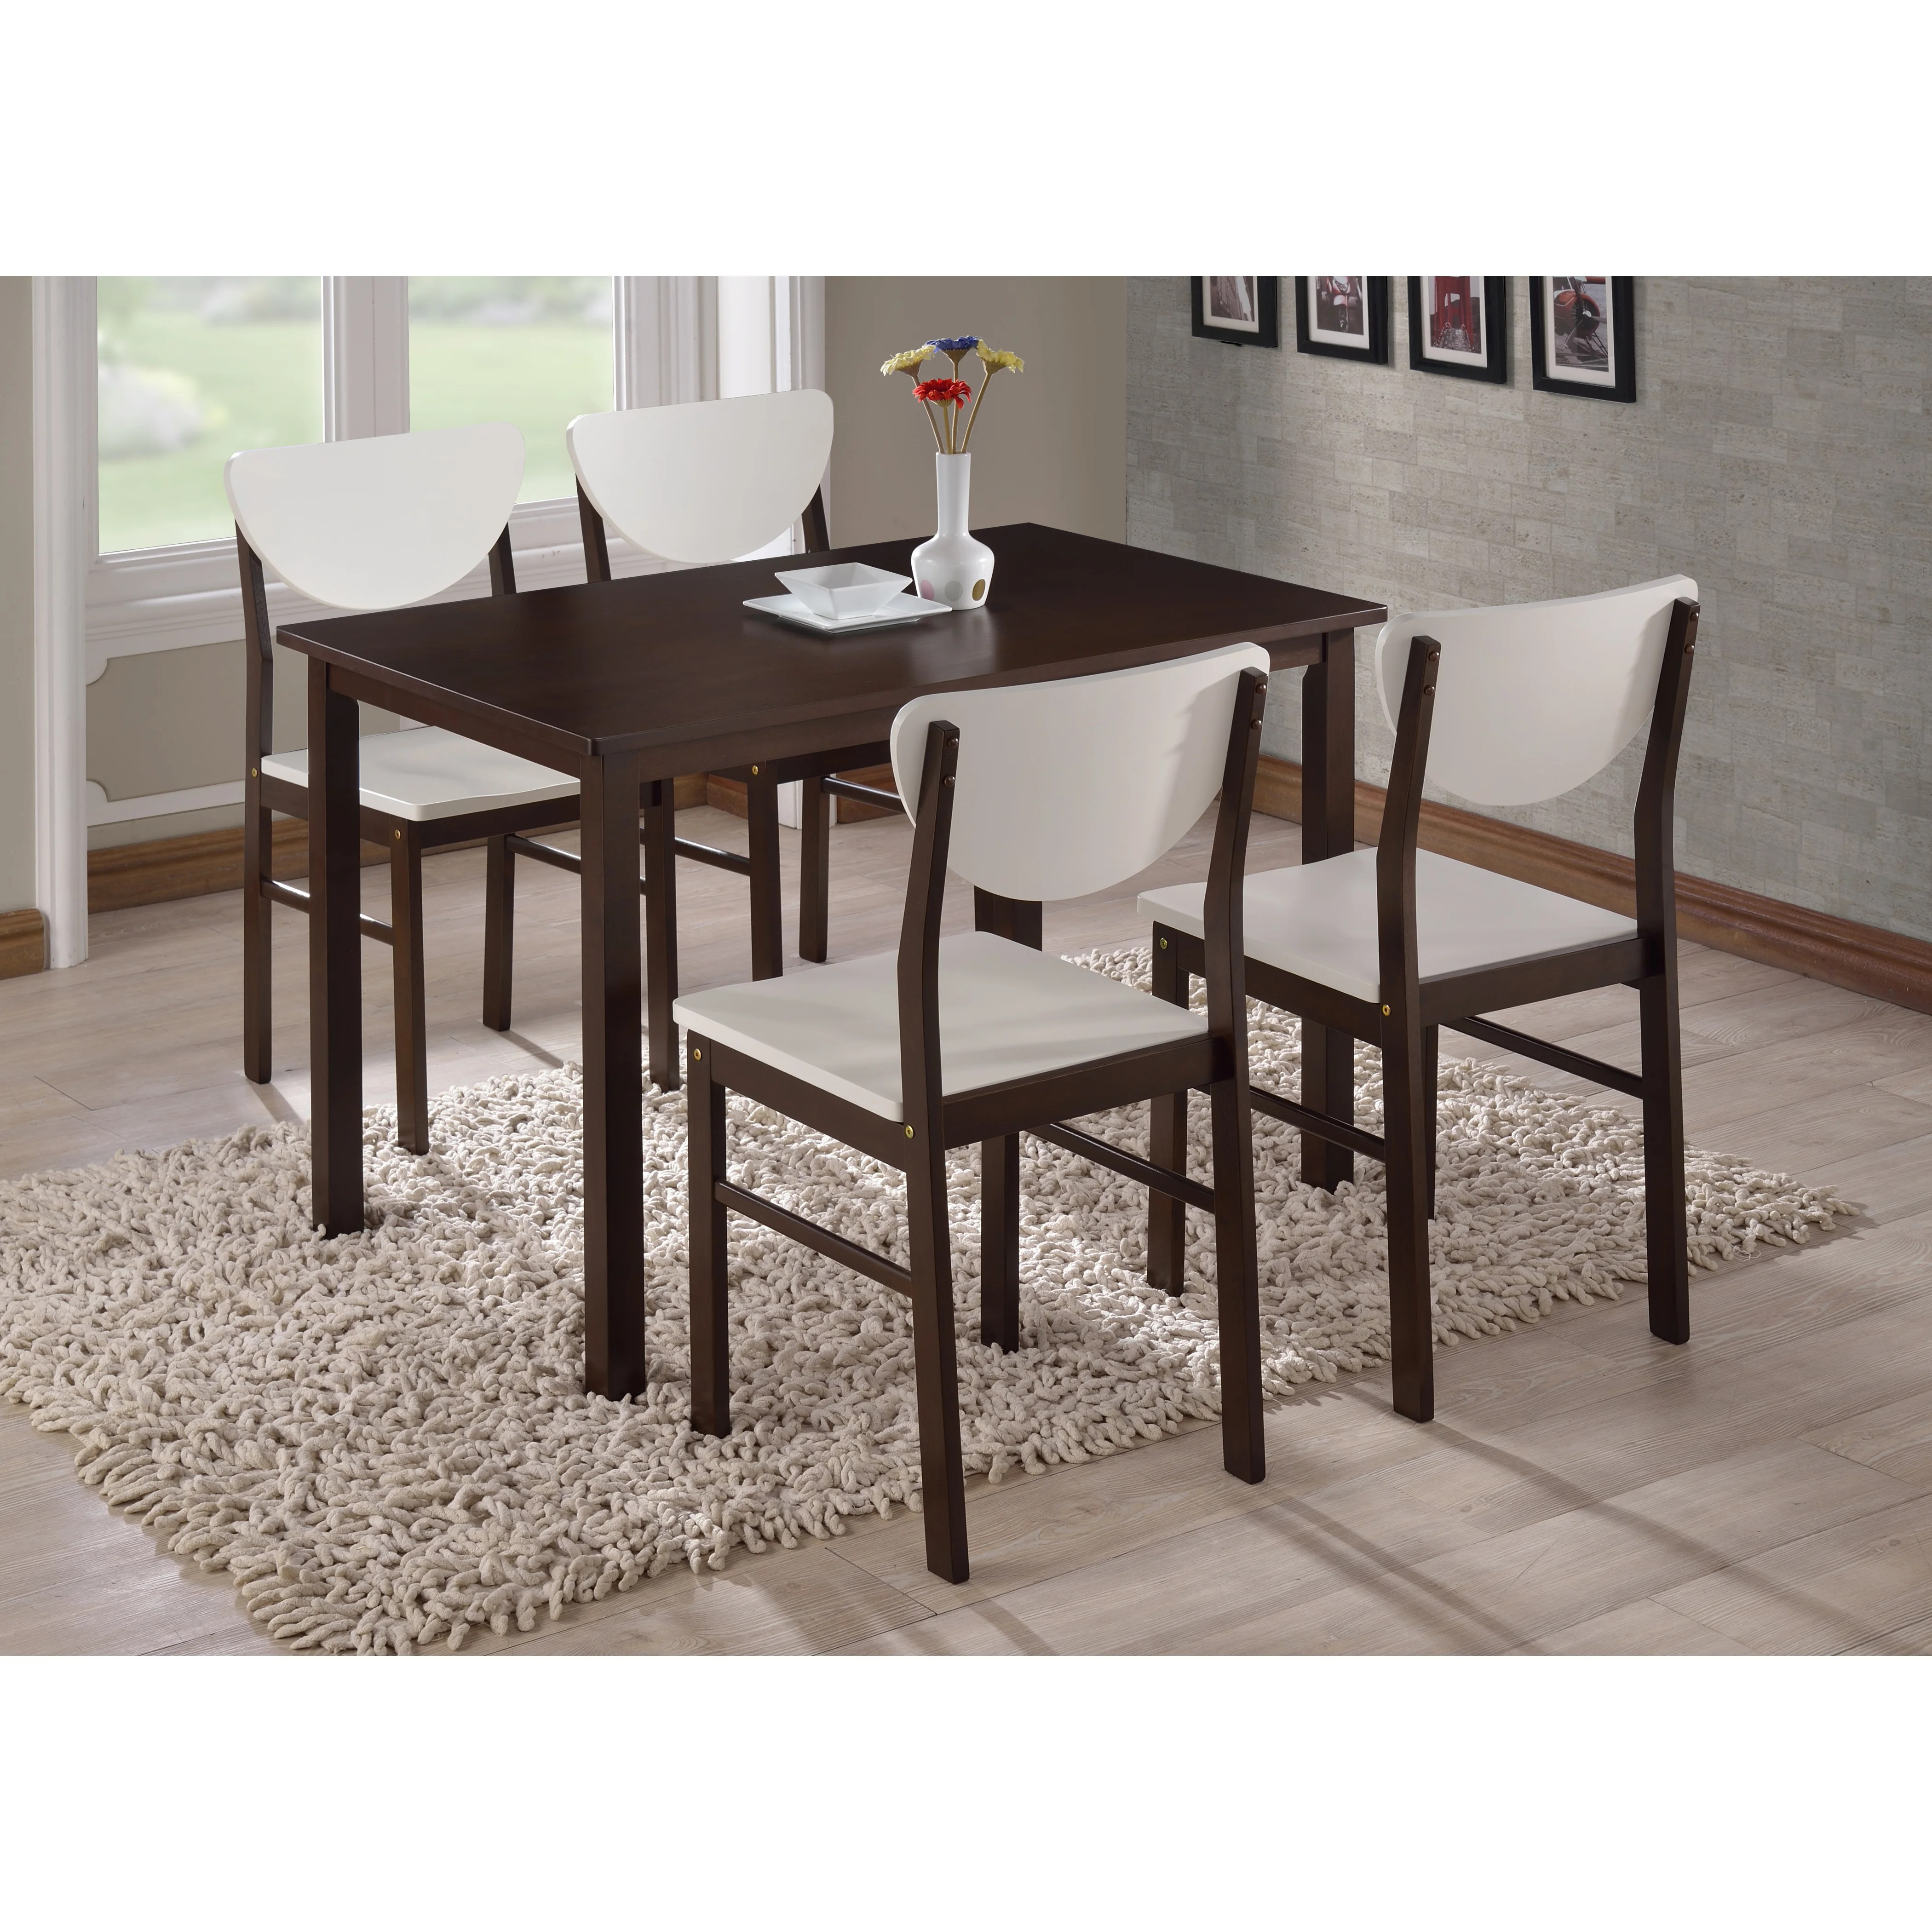 keyword murphy kitchen table QUICK VIEW Dining Table